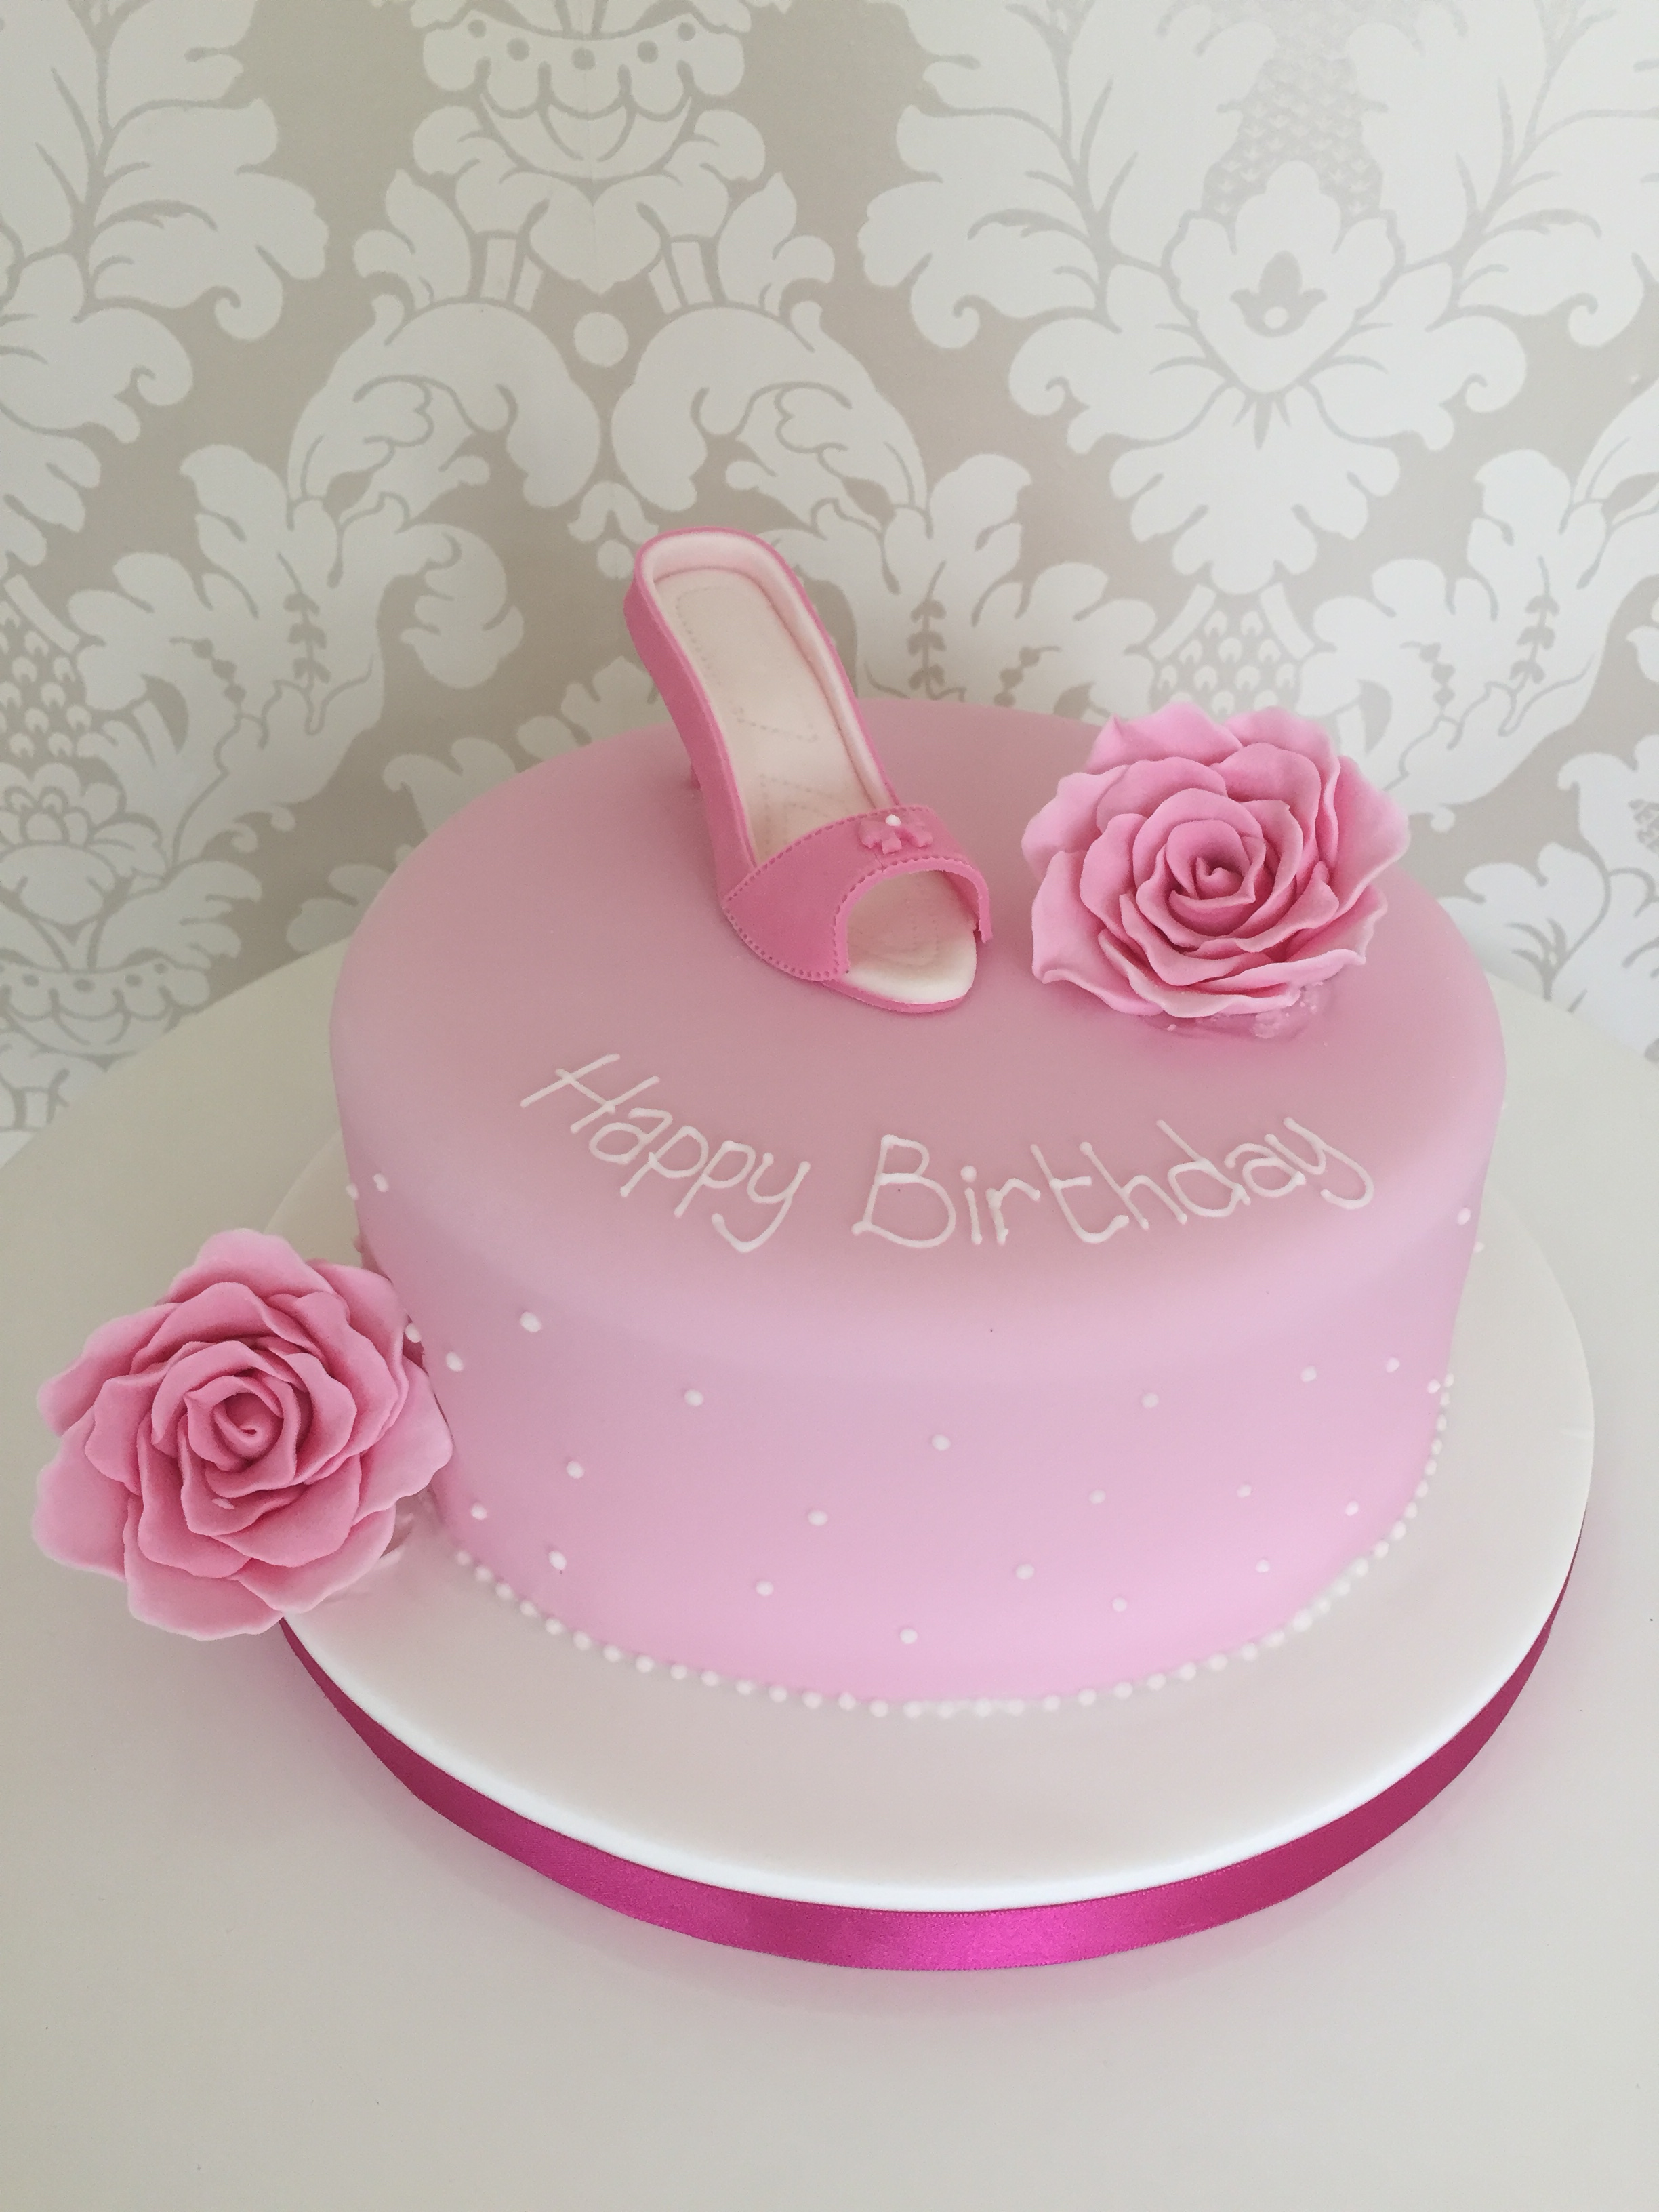 One Tier Pink Shoe Female Birthday Cakes Wit Sugar Roses And White Hand Piped Detail Bedfordshire